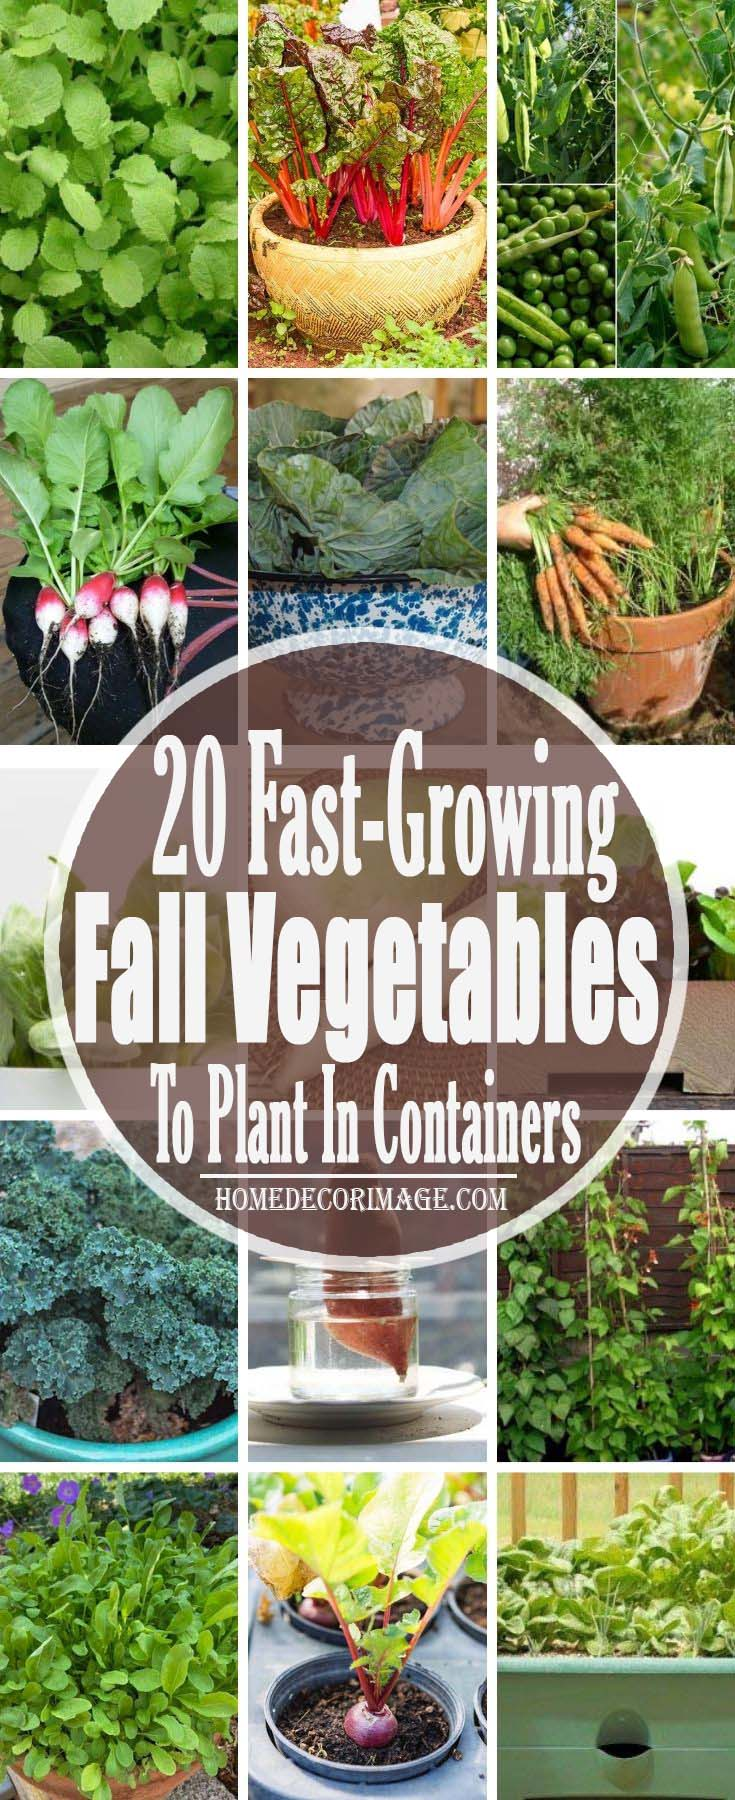 22 Fast Growing Fall Vegetables To Plant In Containers For All Autumn #fallvegetables #homedecorimage